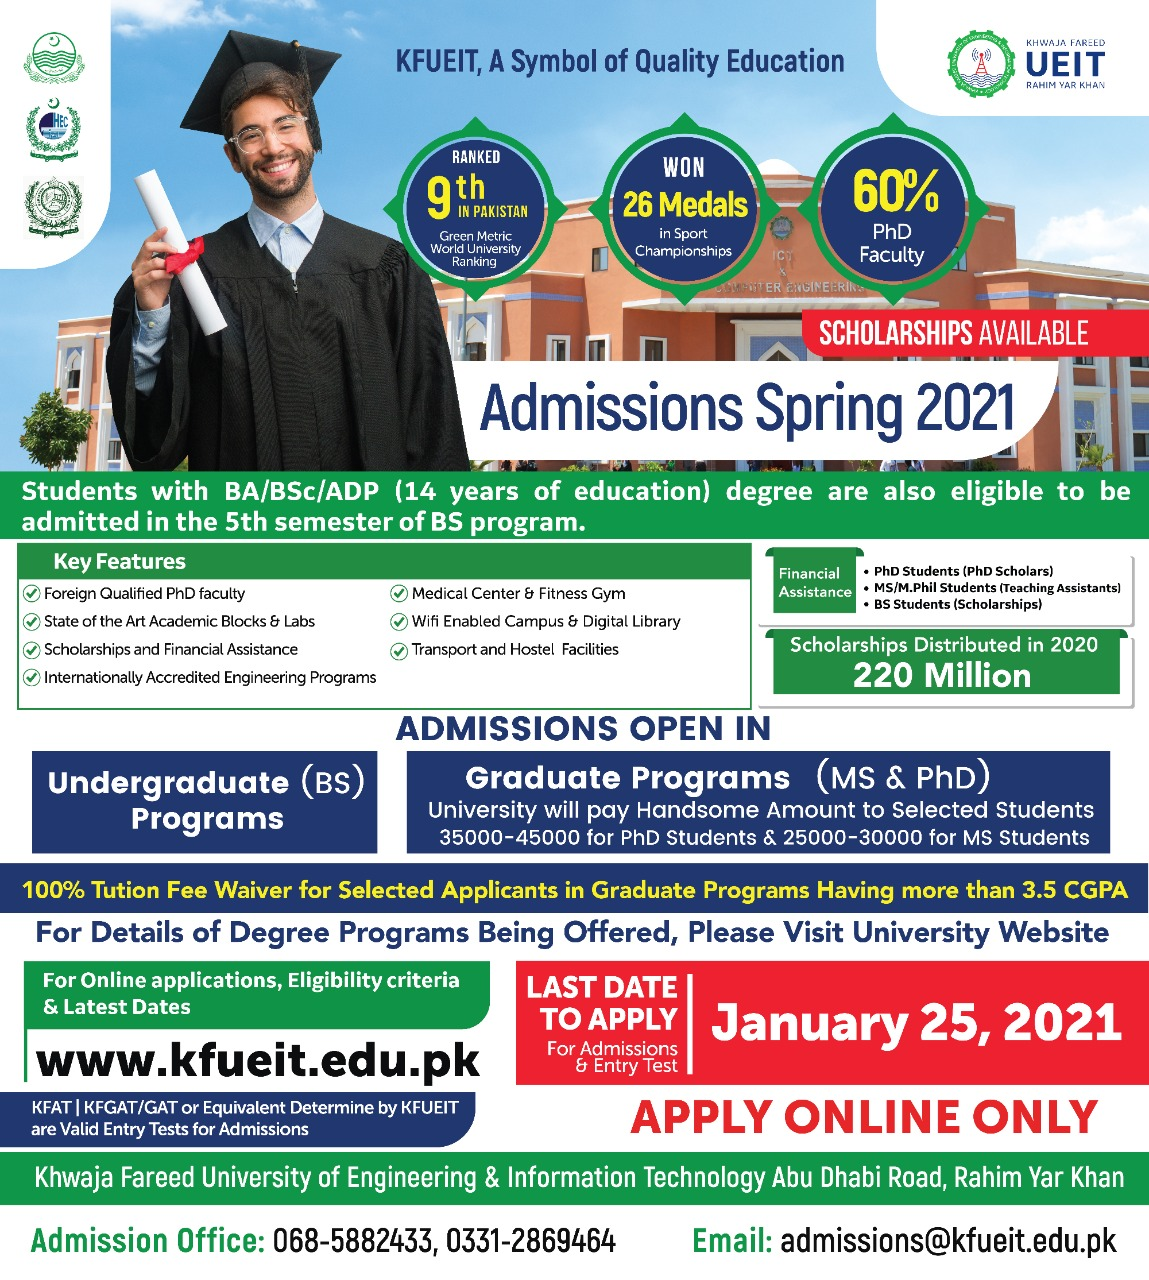 Admission Open for Spring 2021